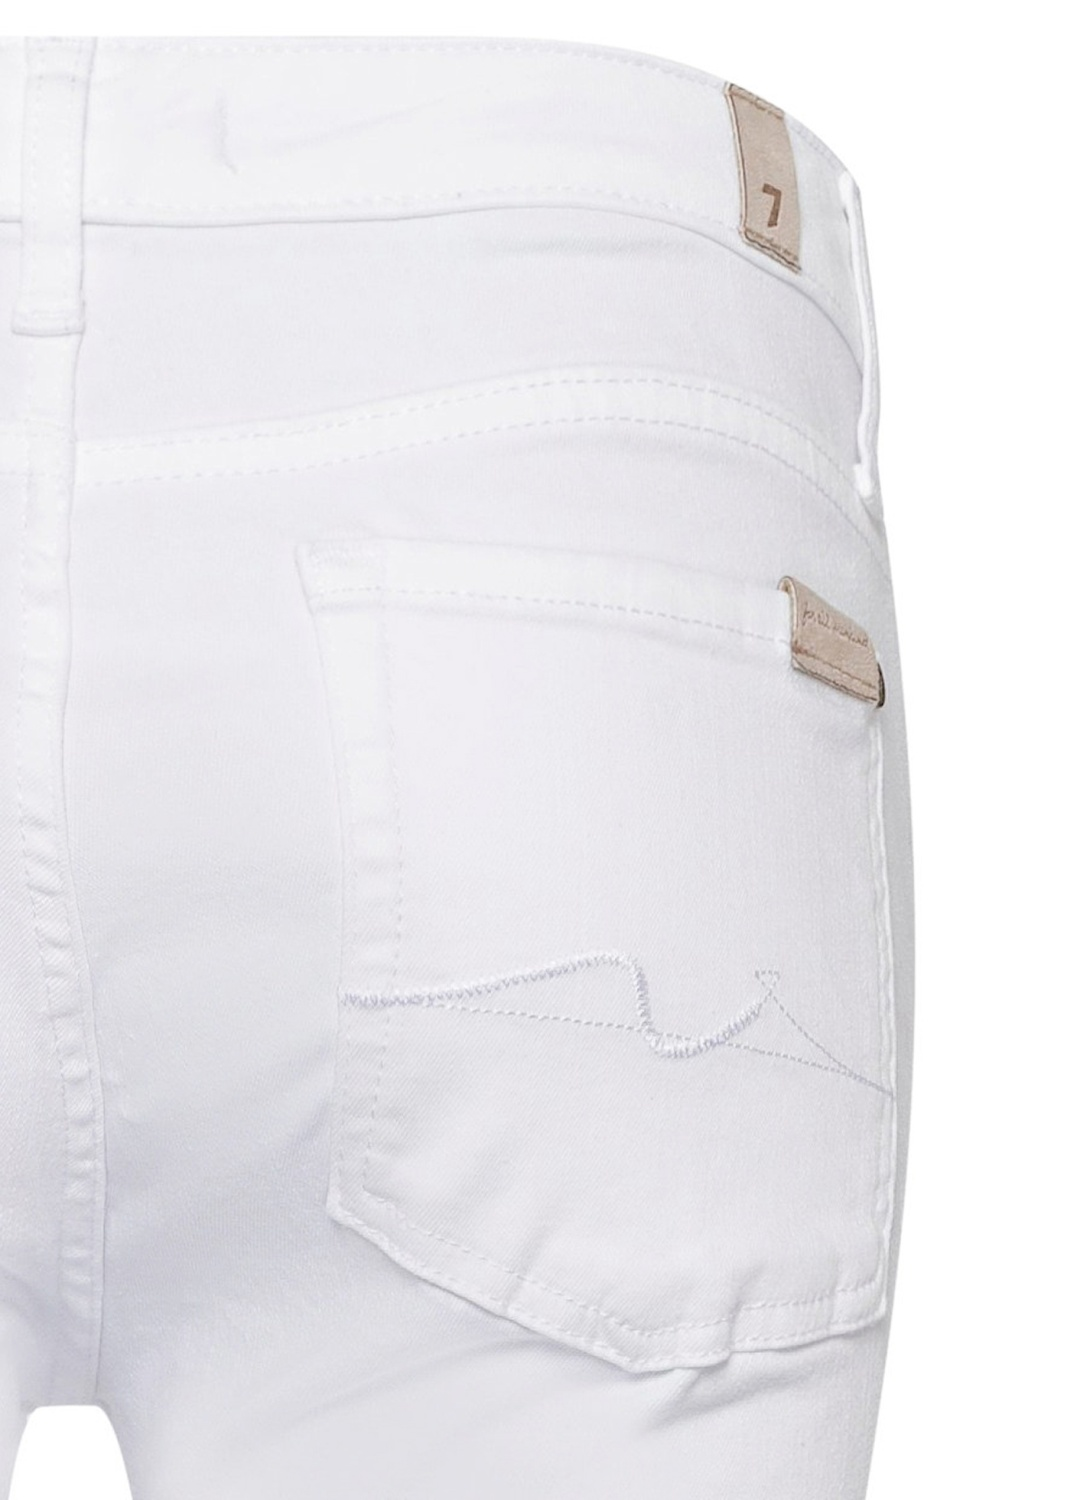 PYPER CROP Slim Illusion Pure White with Raw Cut Frayed image number 3